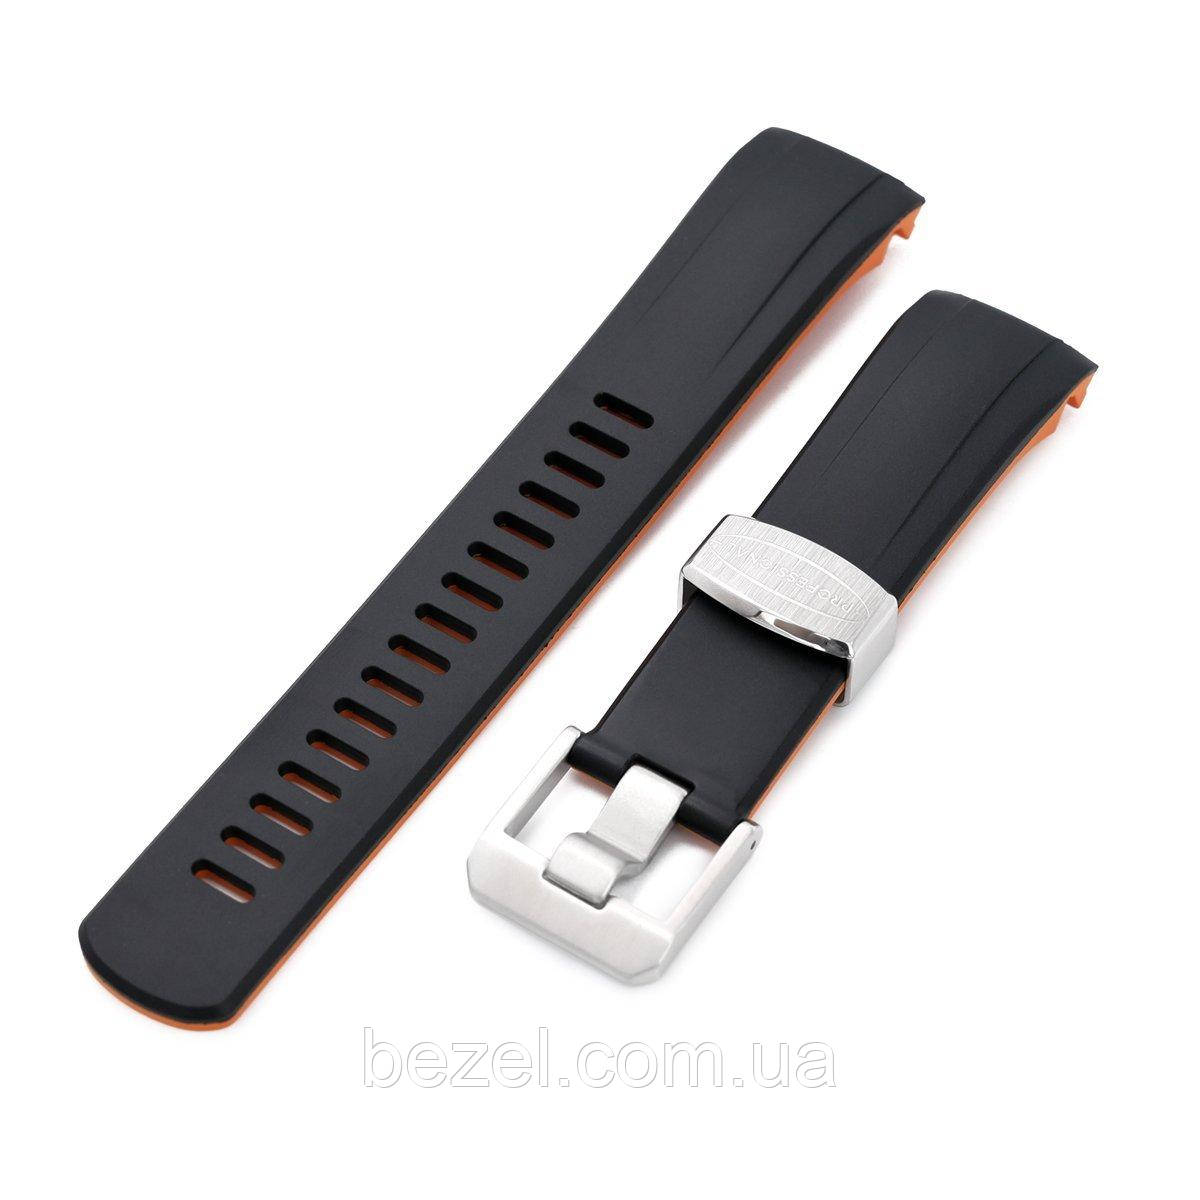 22mm Crafter Blue - Dual Color Black & Orange Rubber Curved Lug Watch Strap for Seiko Samurai SRPB51